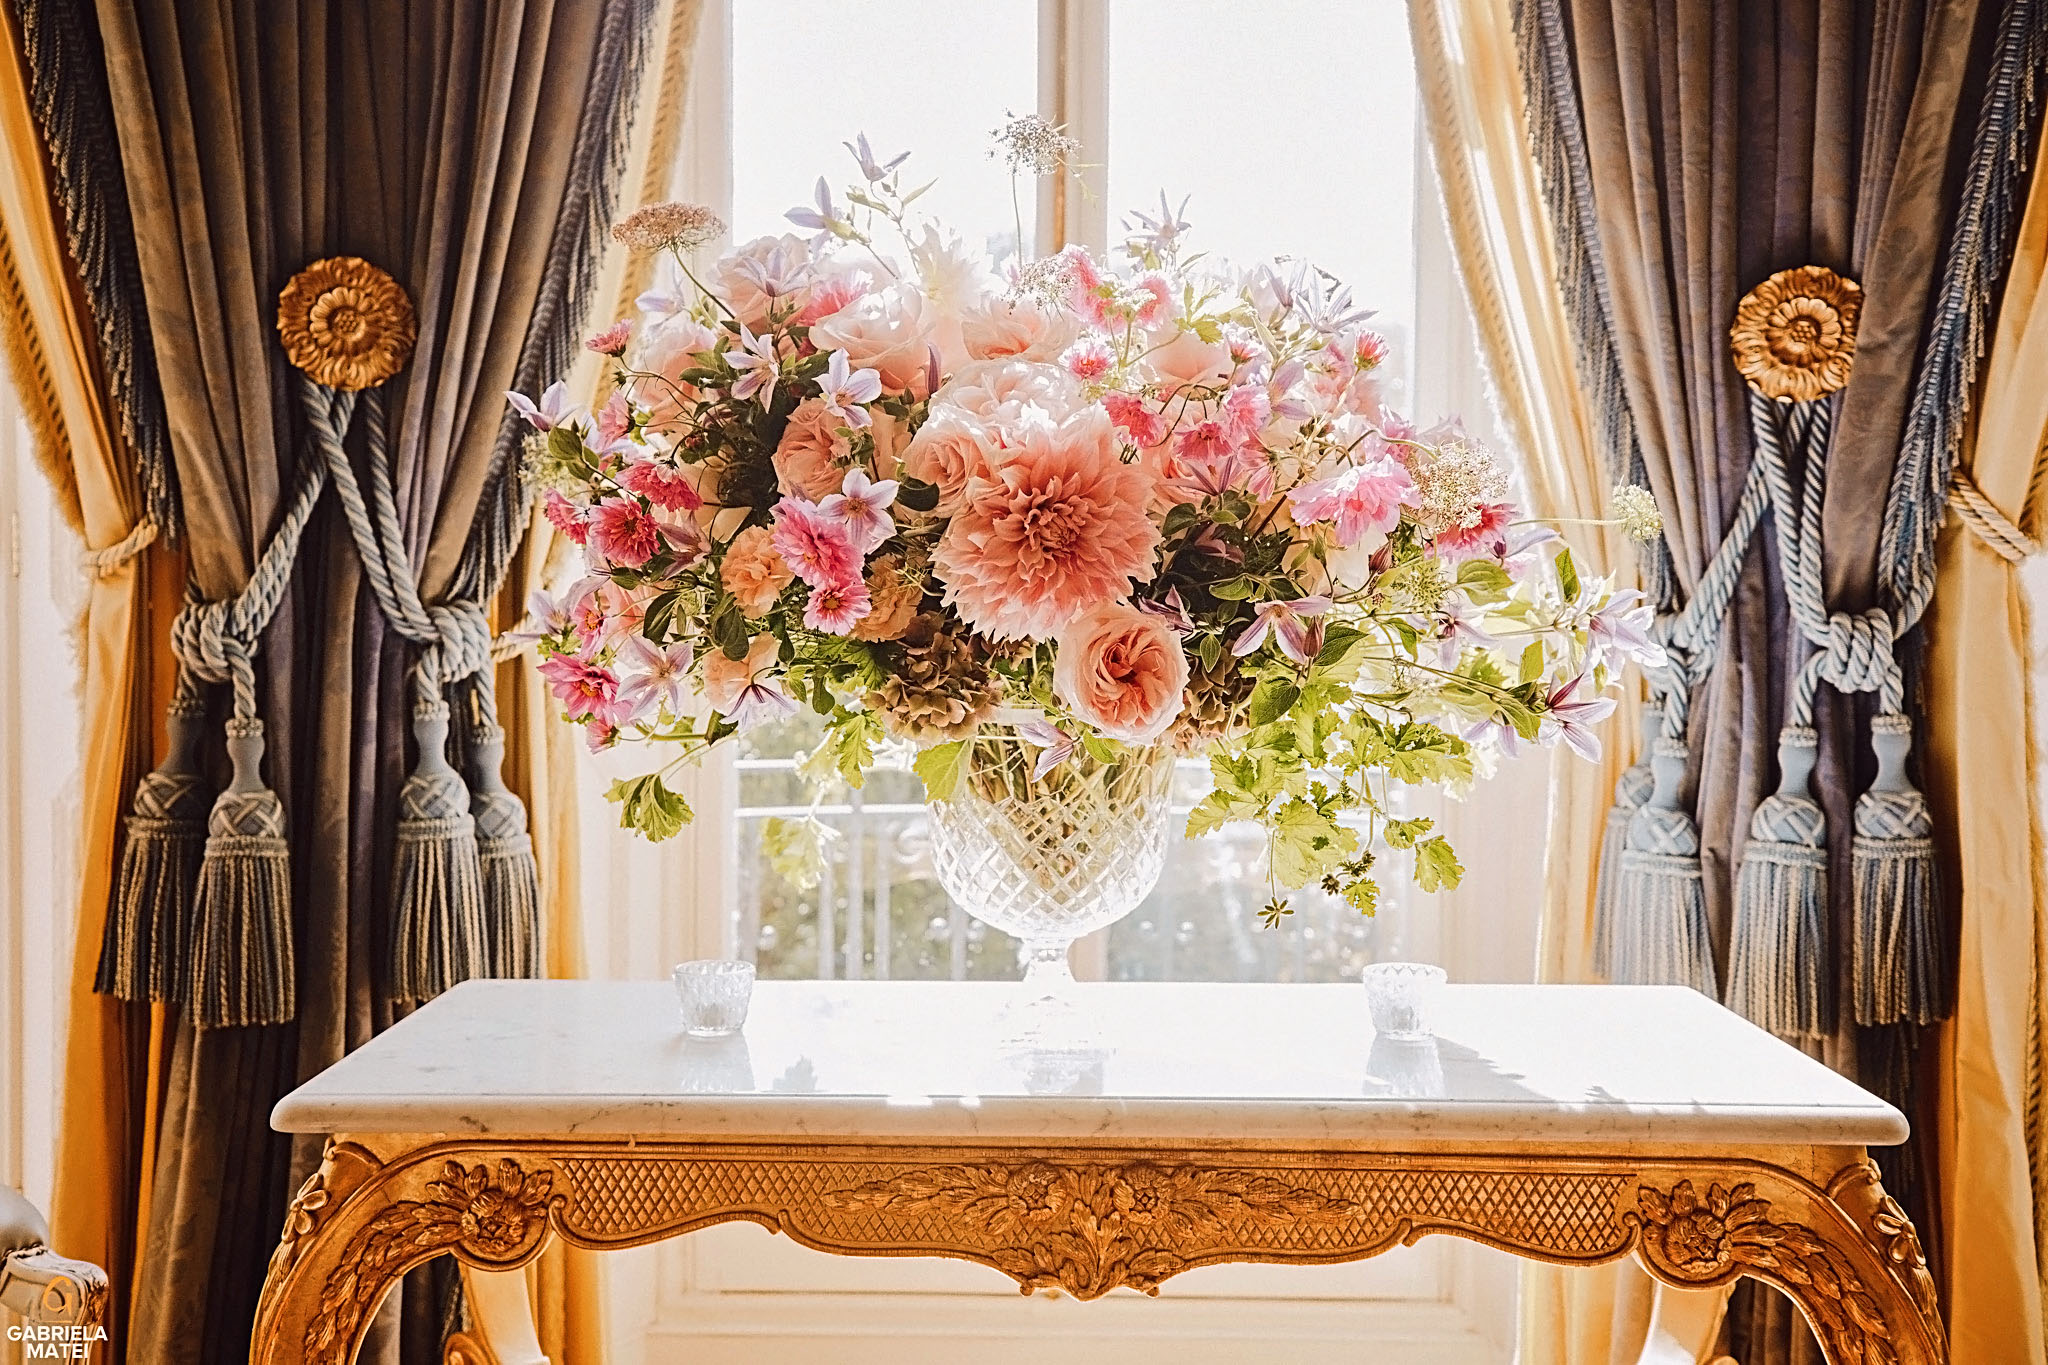 Classy floral arrangement vase at The Ritz in London